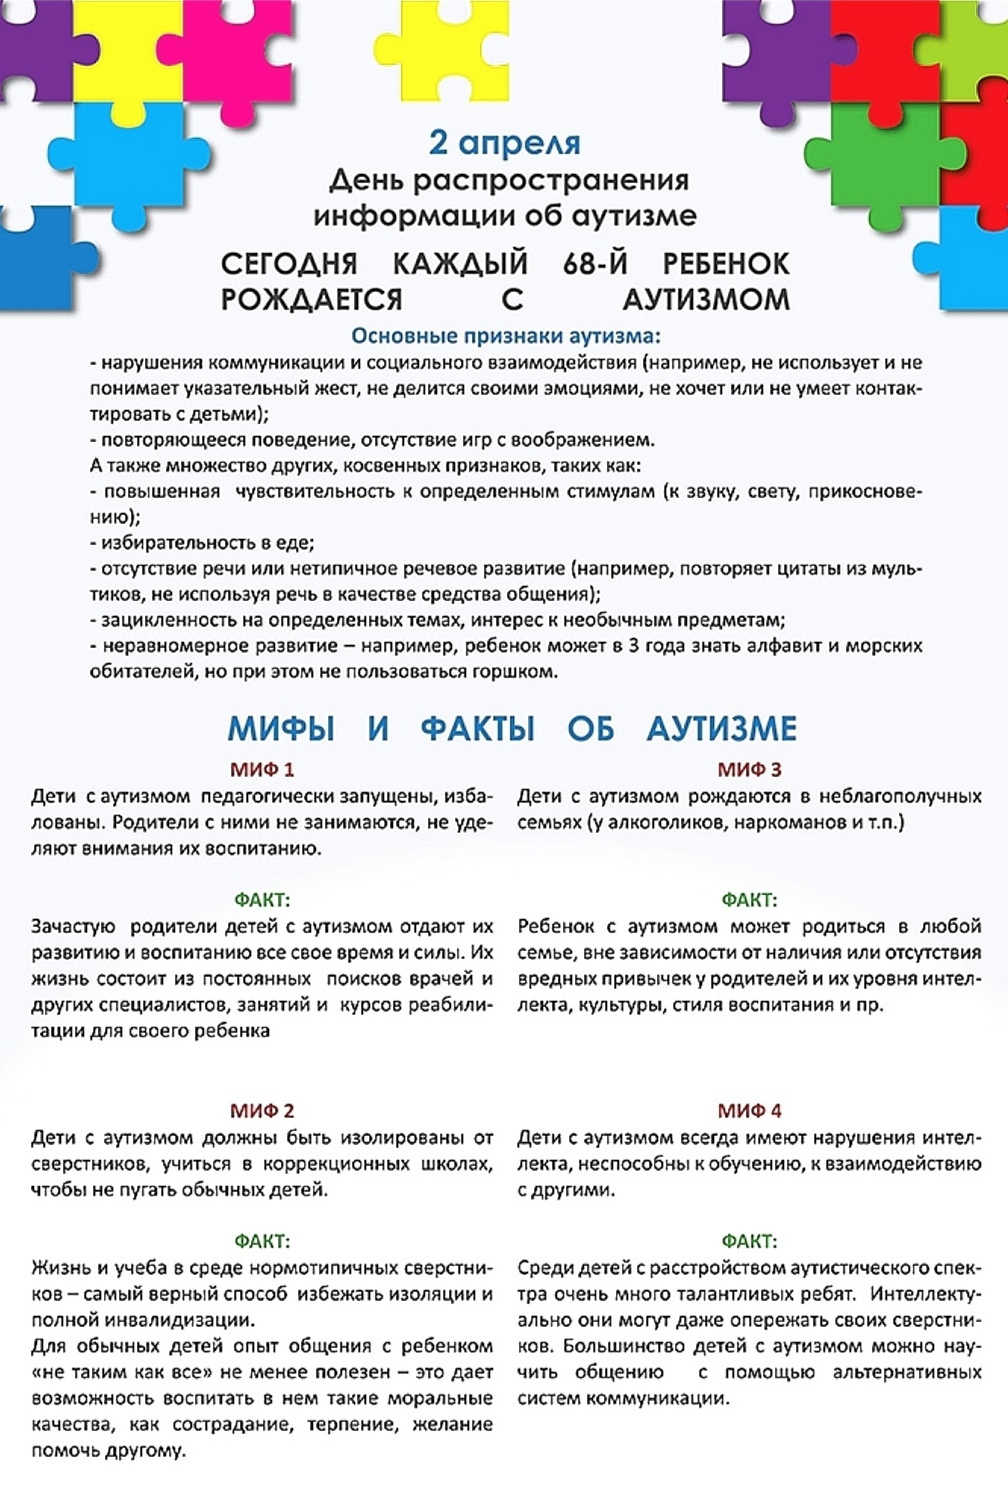 Аутизм